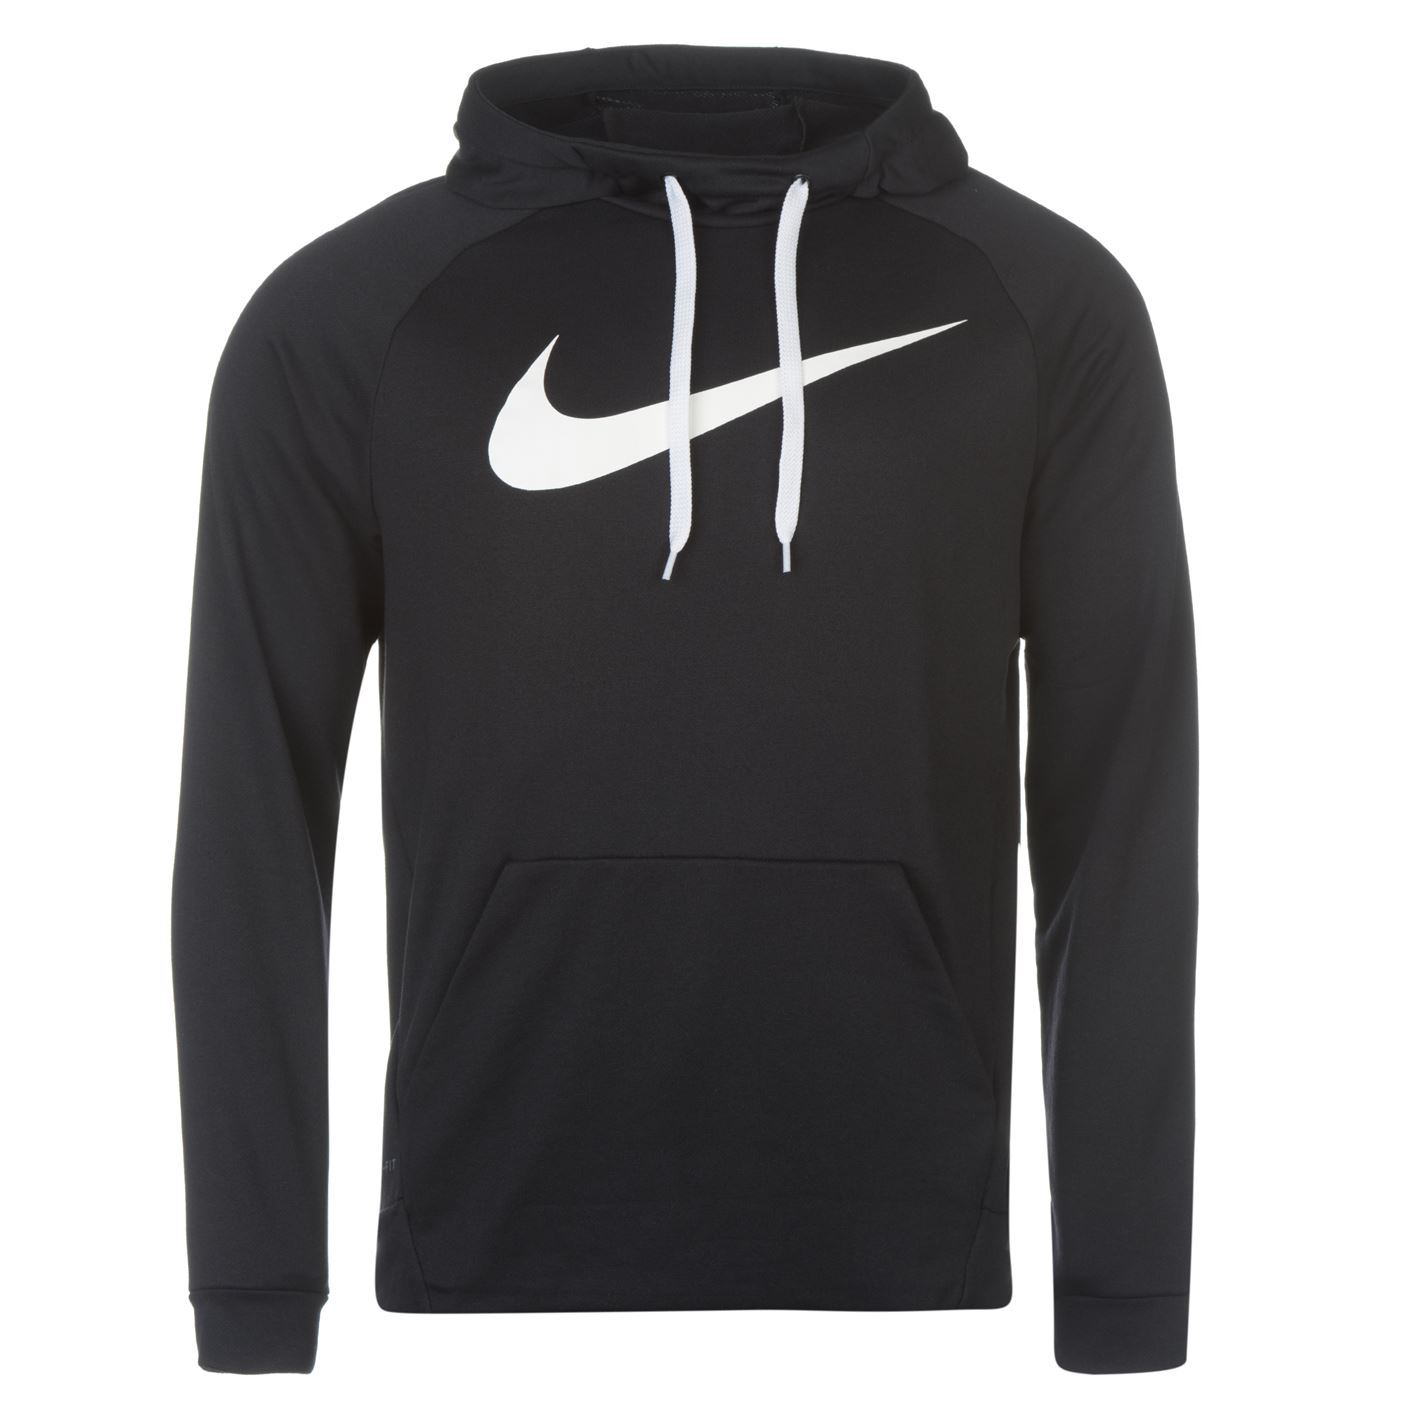 Nike-Dri-Fit-Swoosh-Pullover-Hoody-Mens-OTH-Hoodie-Sweatshirt-Sweater-Hooded-Top thumbnail 6